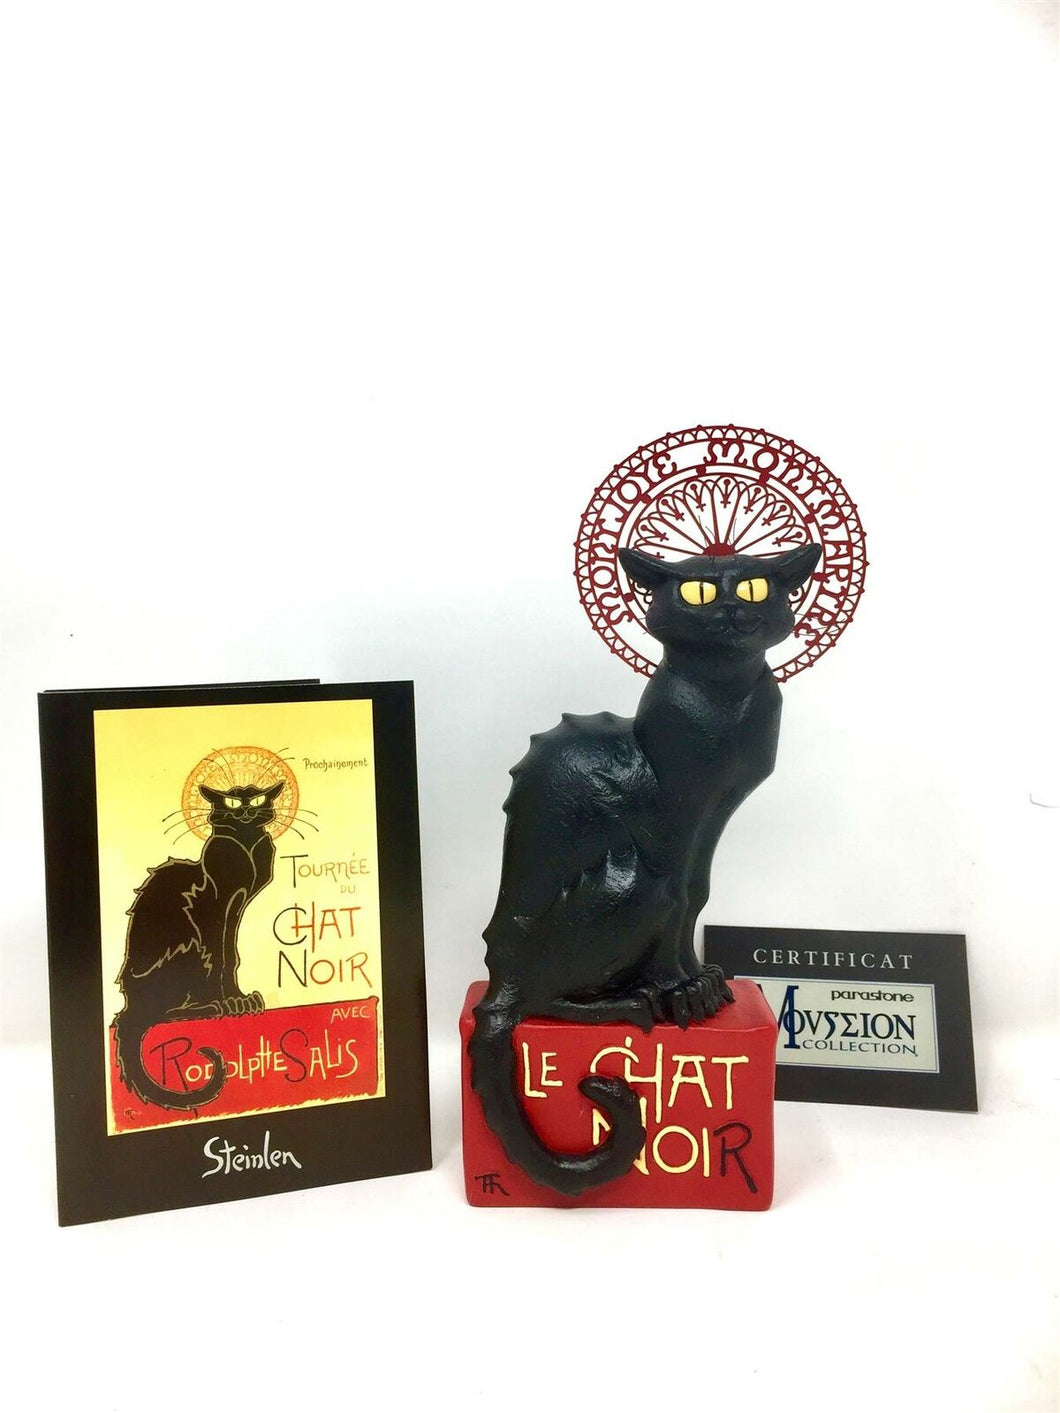 Le Chat Noir Black Cat Statue Steinlen Sculpture Museum Reproduction Inspired